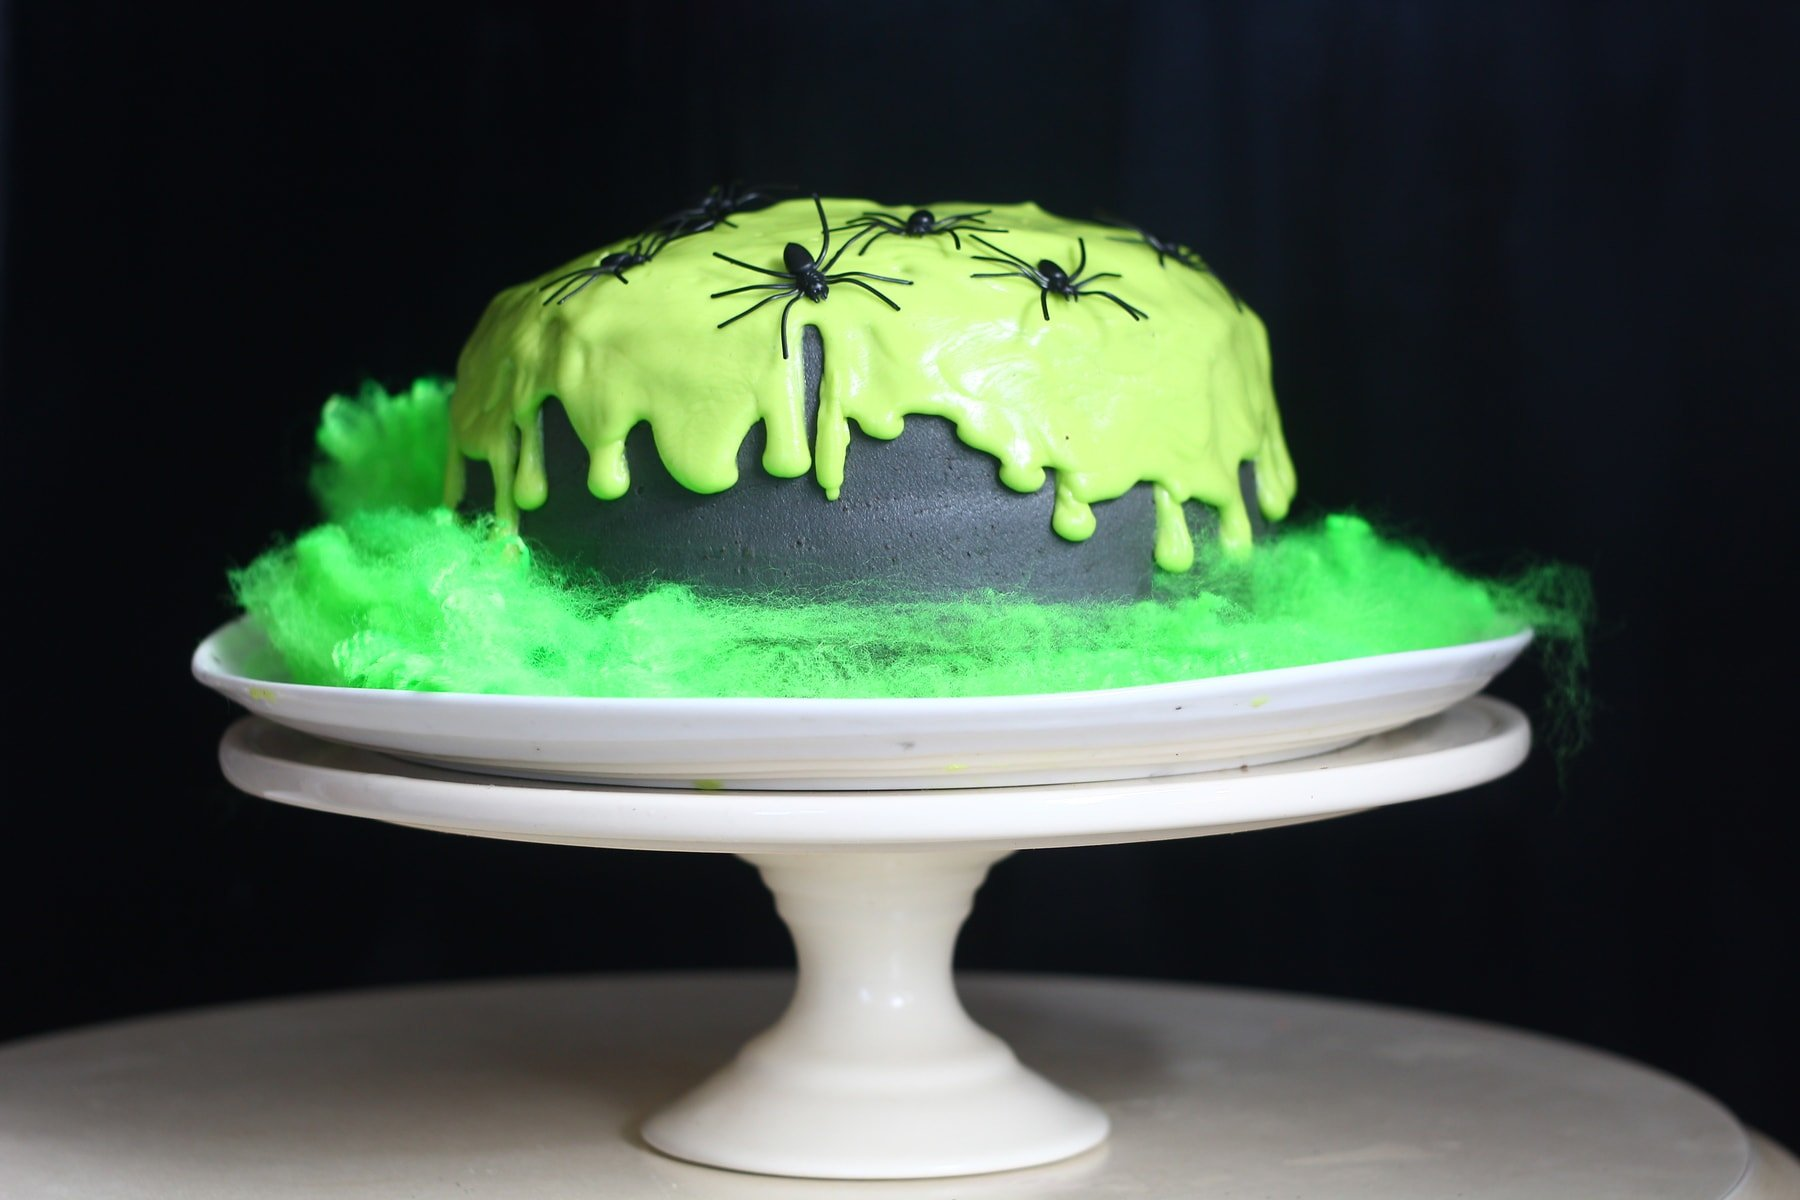 Chocolate Fudge Halloween Slime Cake